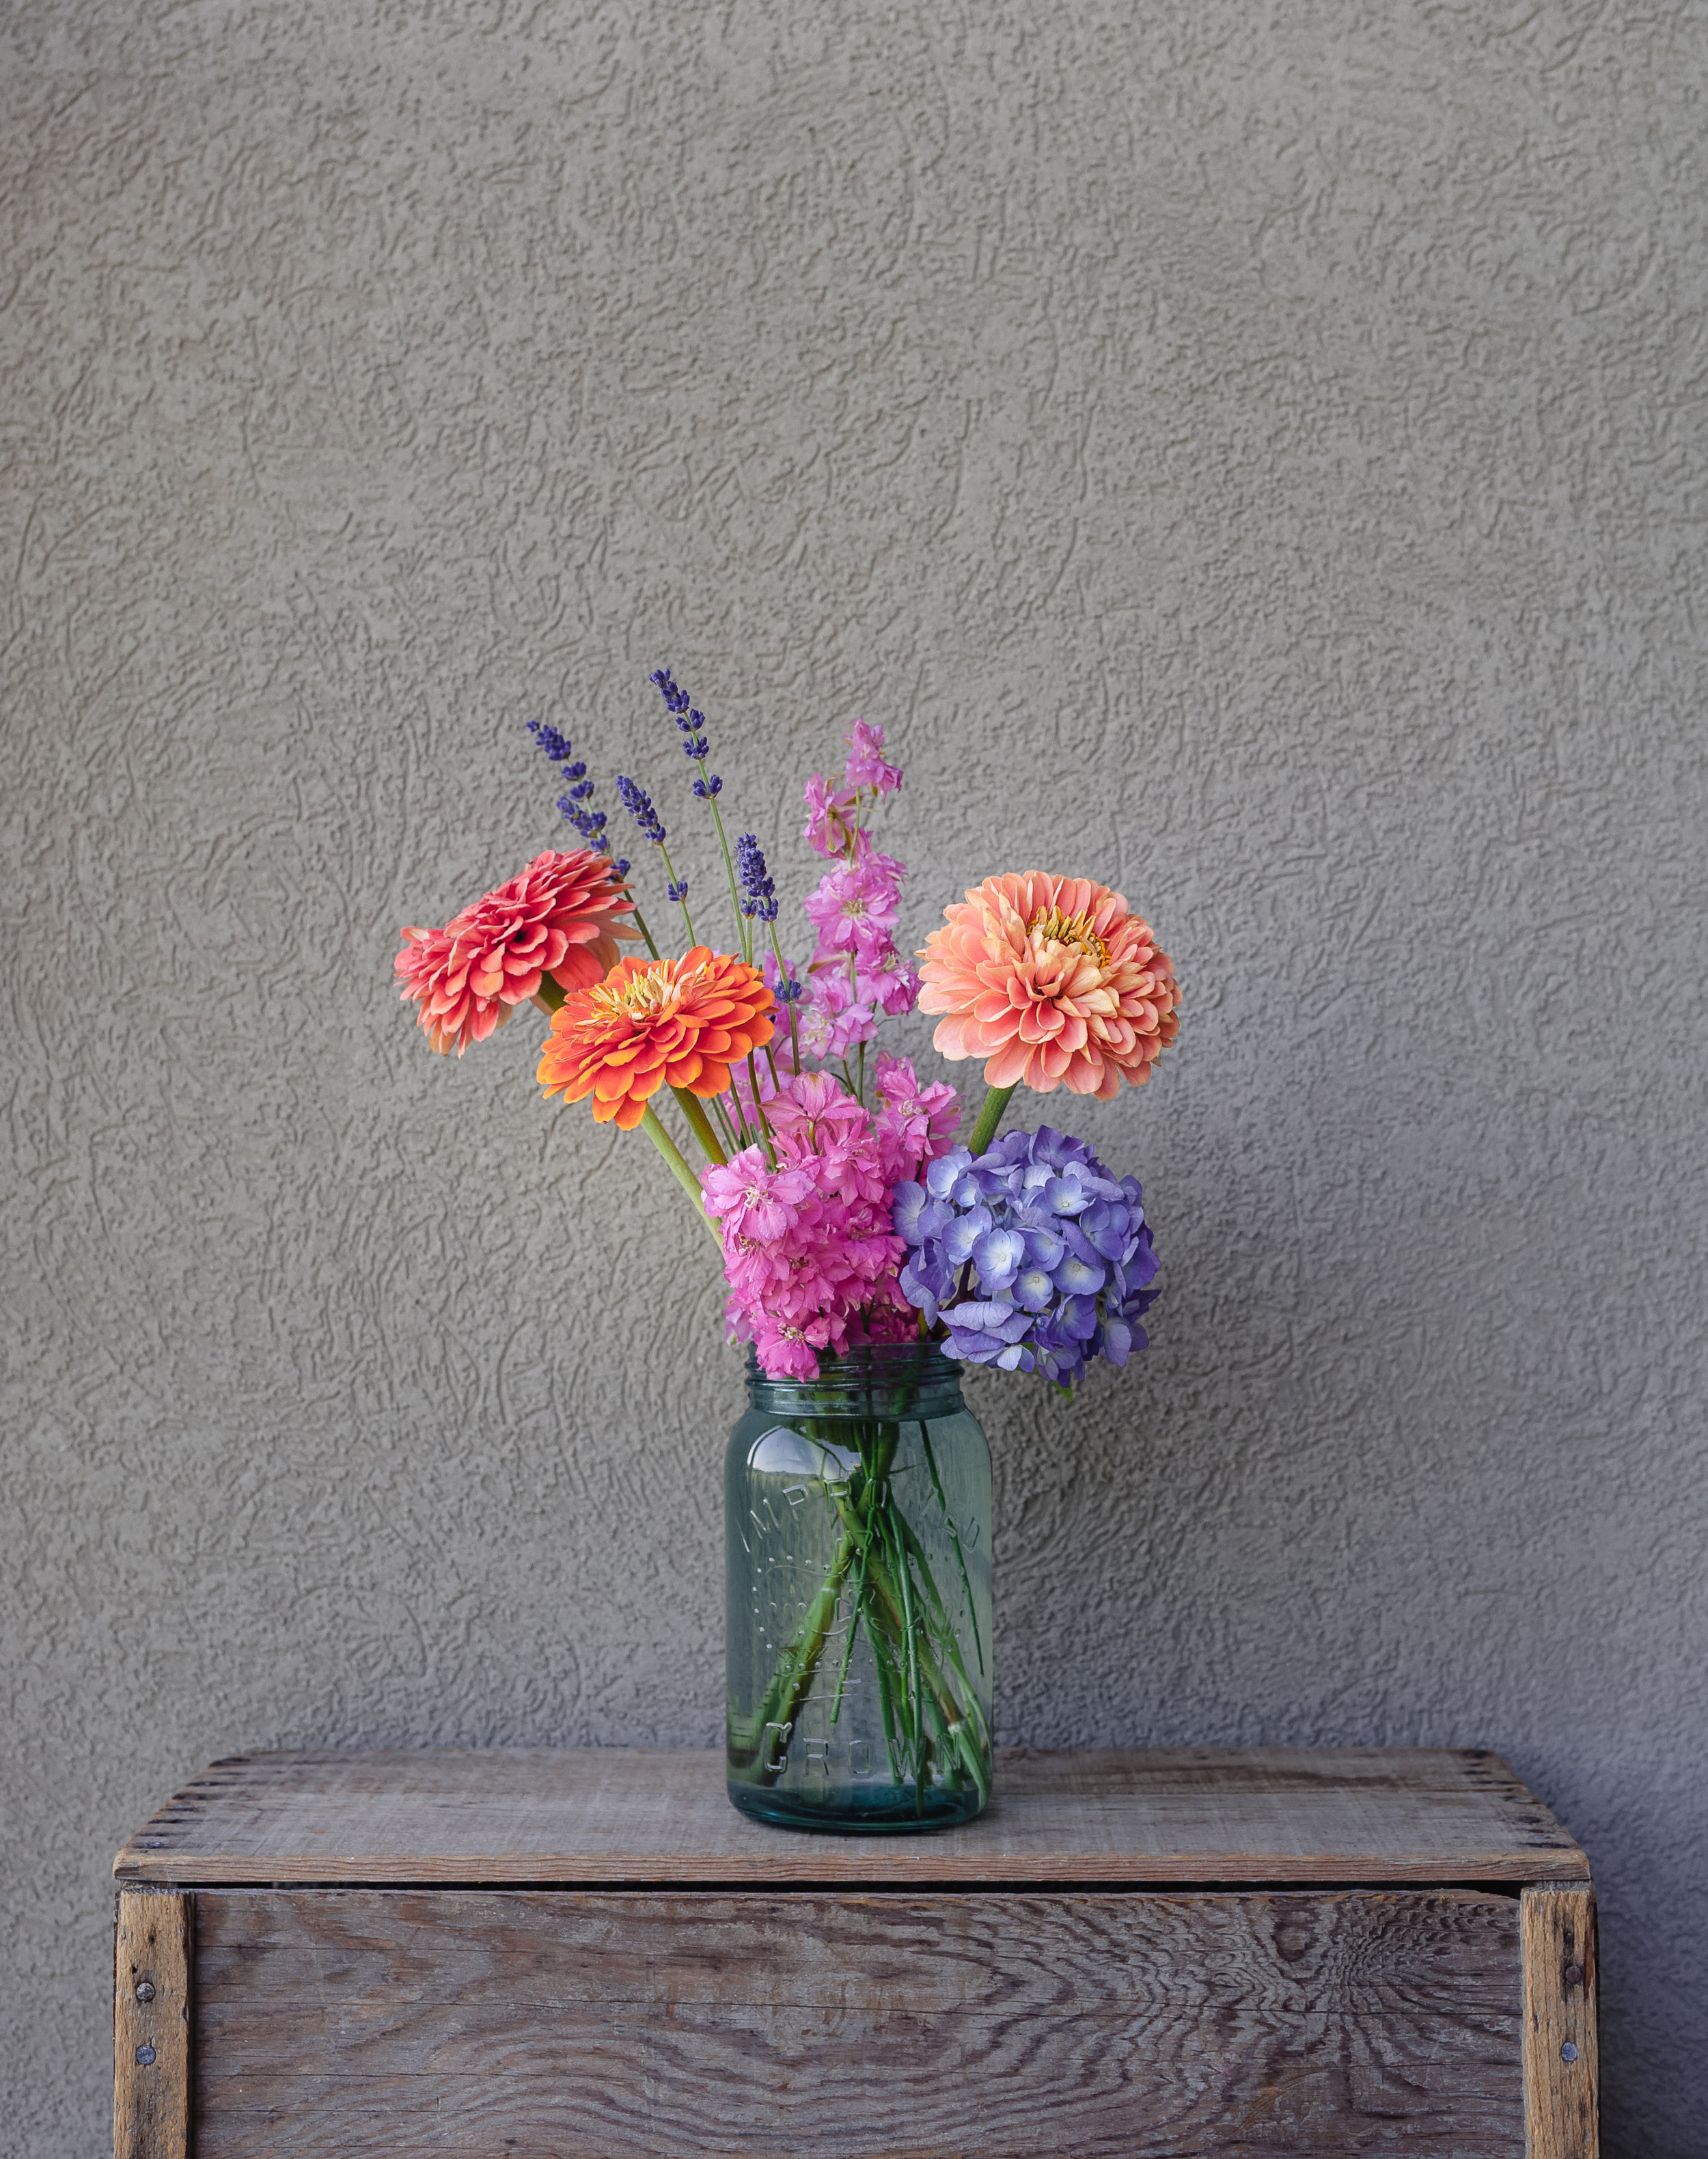 A mixed bouquet of zinnias, lavender, larkspur, and one long-lived hydrangea